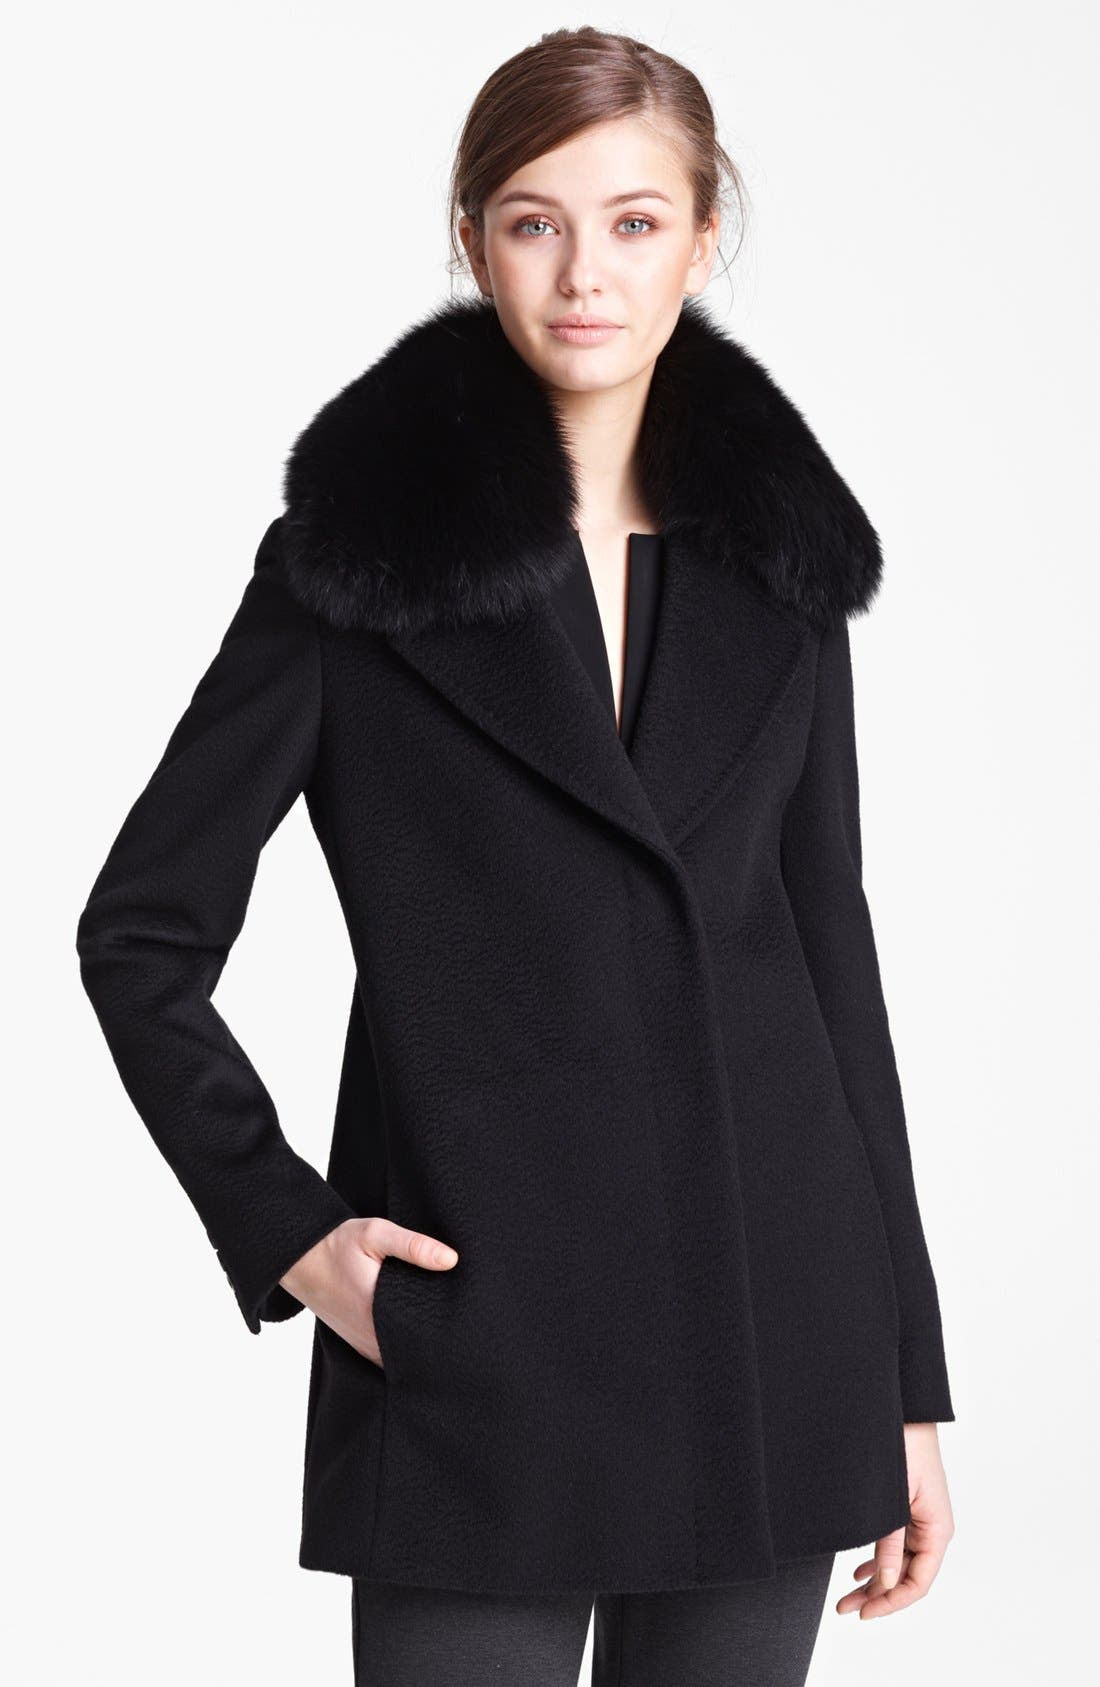 Alternate Image 1 Selected - Max Mara Camel's Hair Swing Coat with Genuine Fur Collar